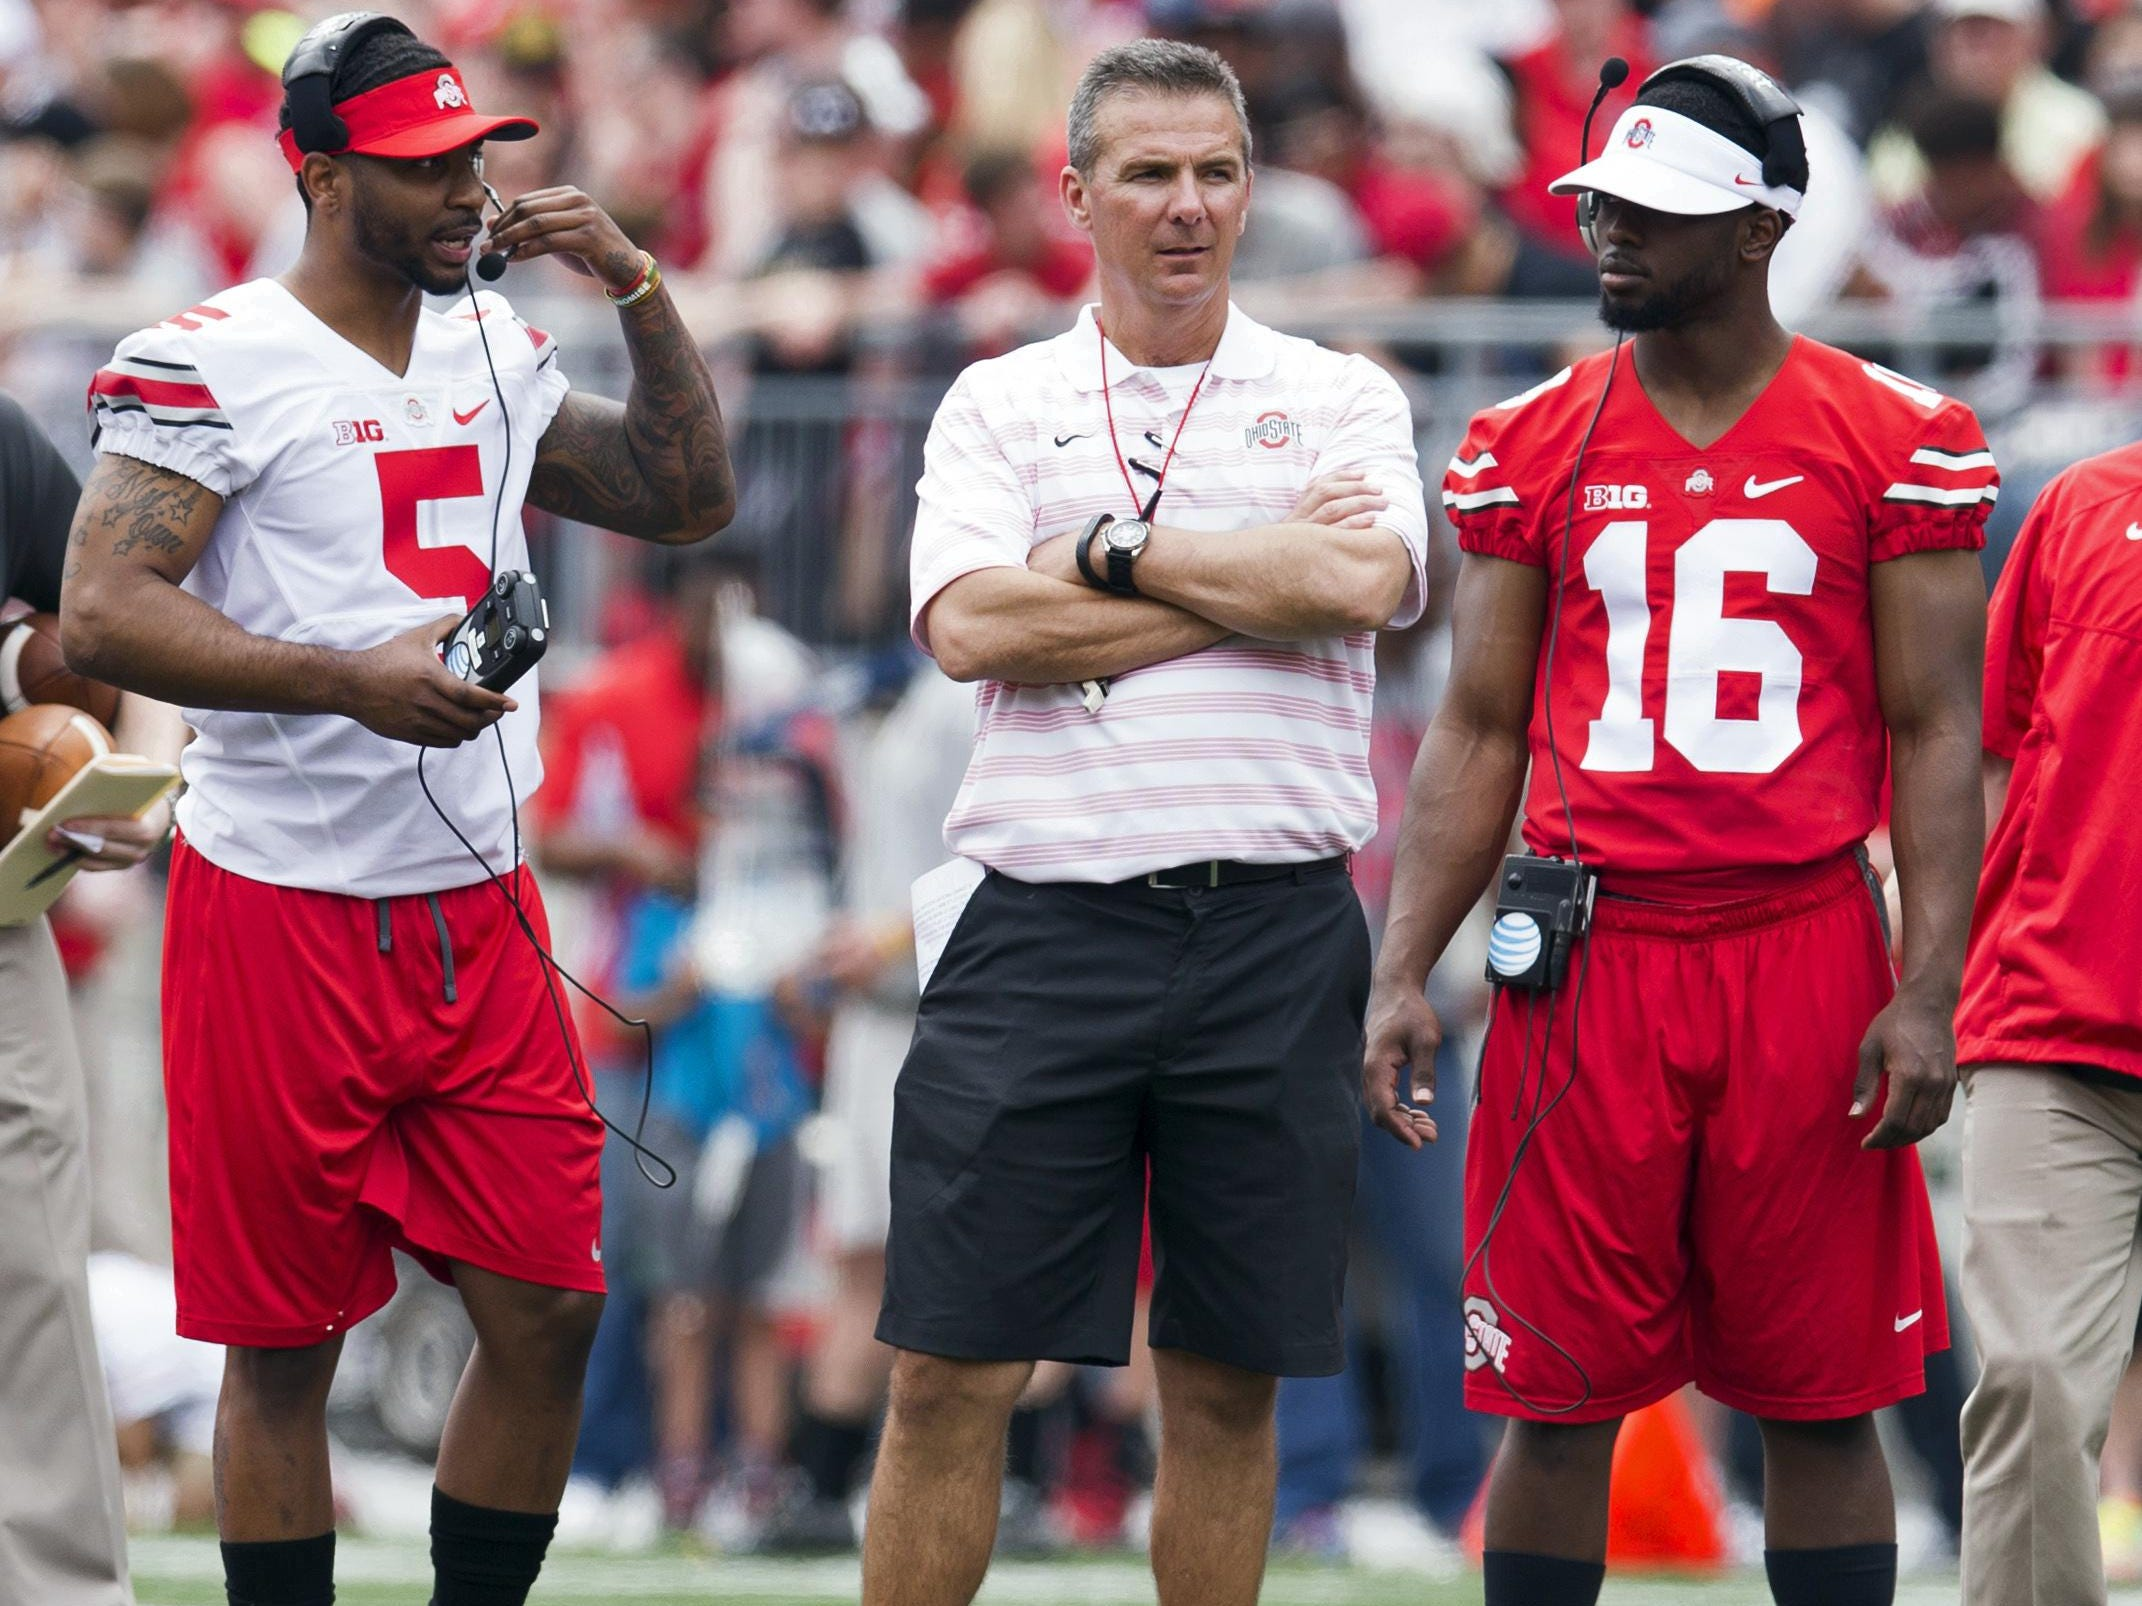 Ohio State coach Urban Meyer is flanked by Braxton Miller and J.T. Barrett at this year's spring game. Miller is switching from quarterback to receiver after a second surgery on his throwing shoulder.